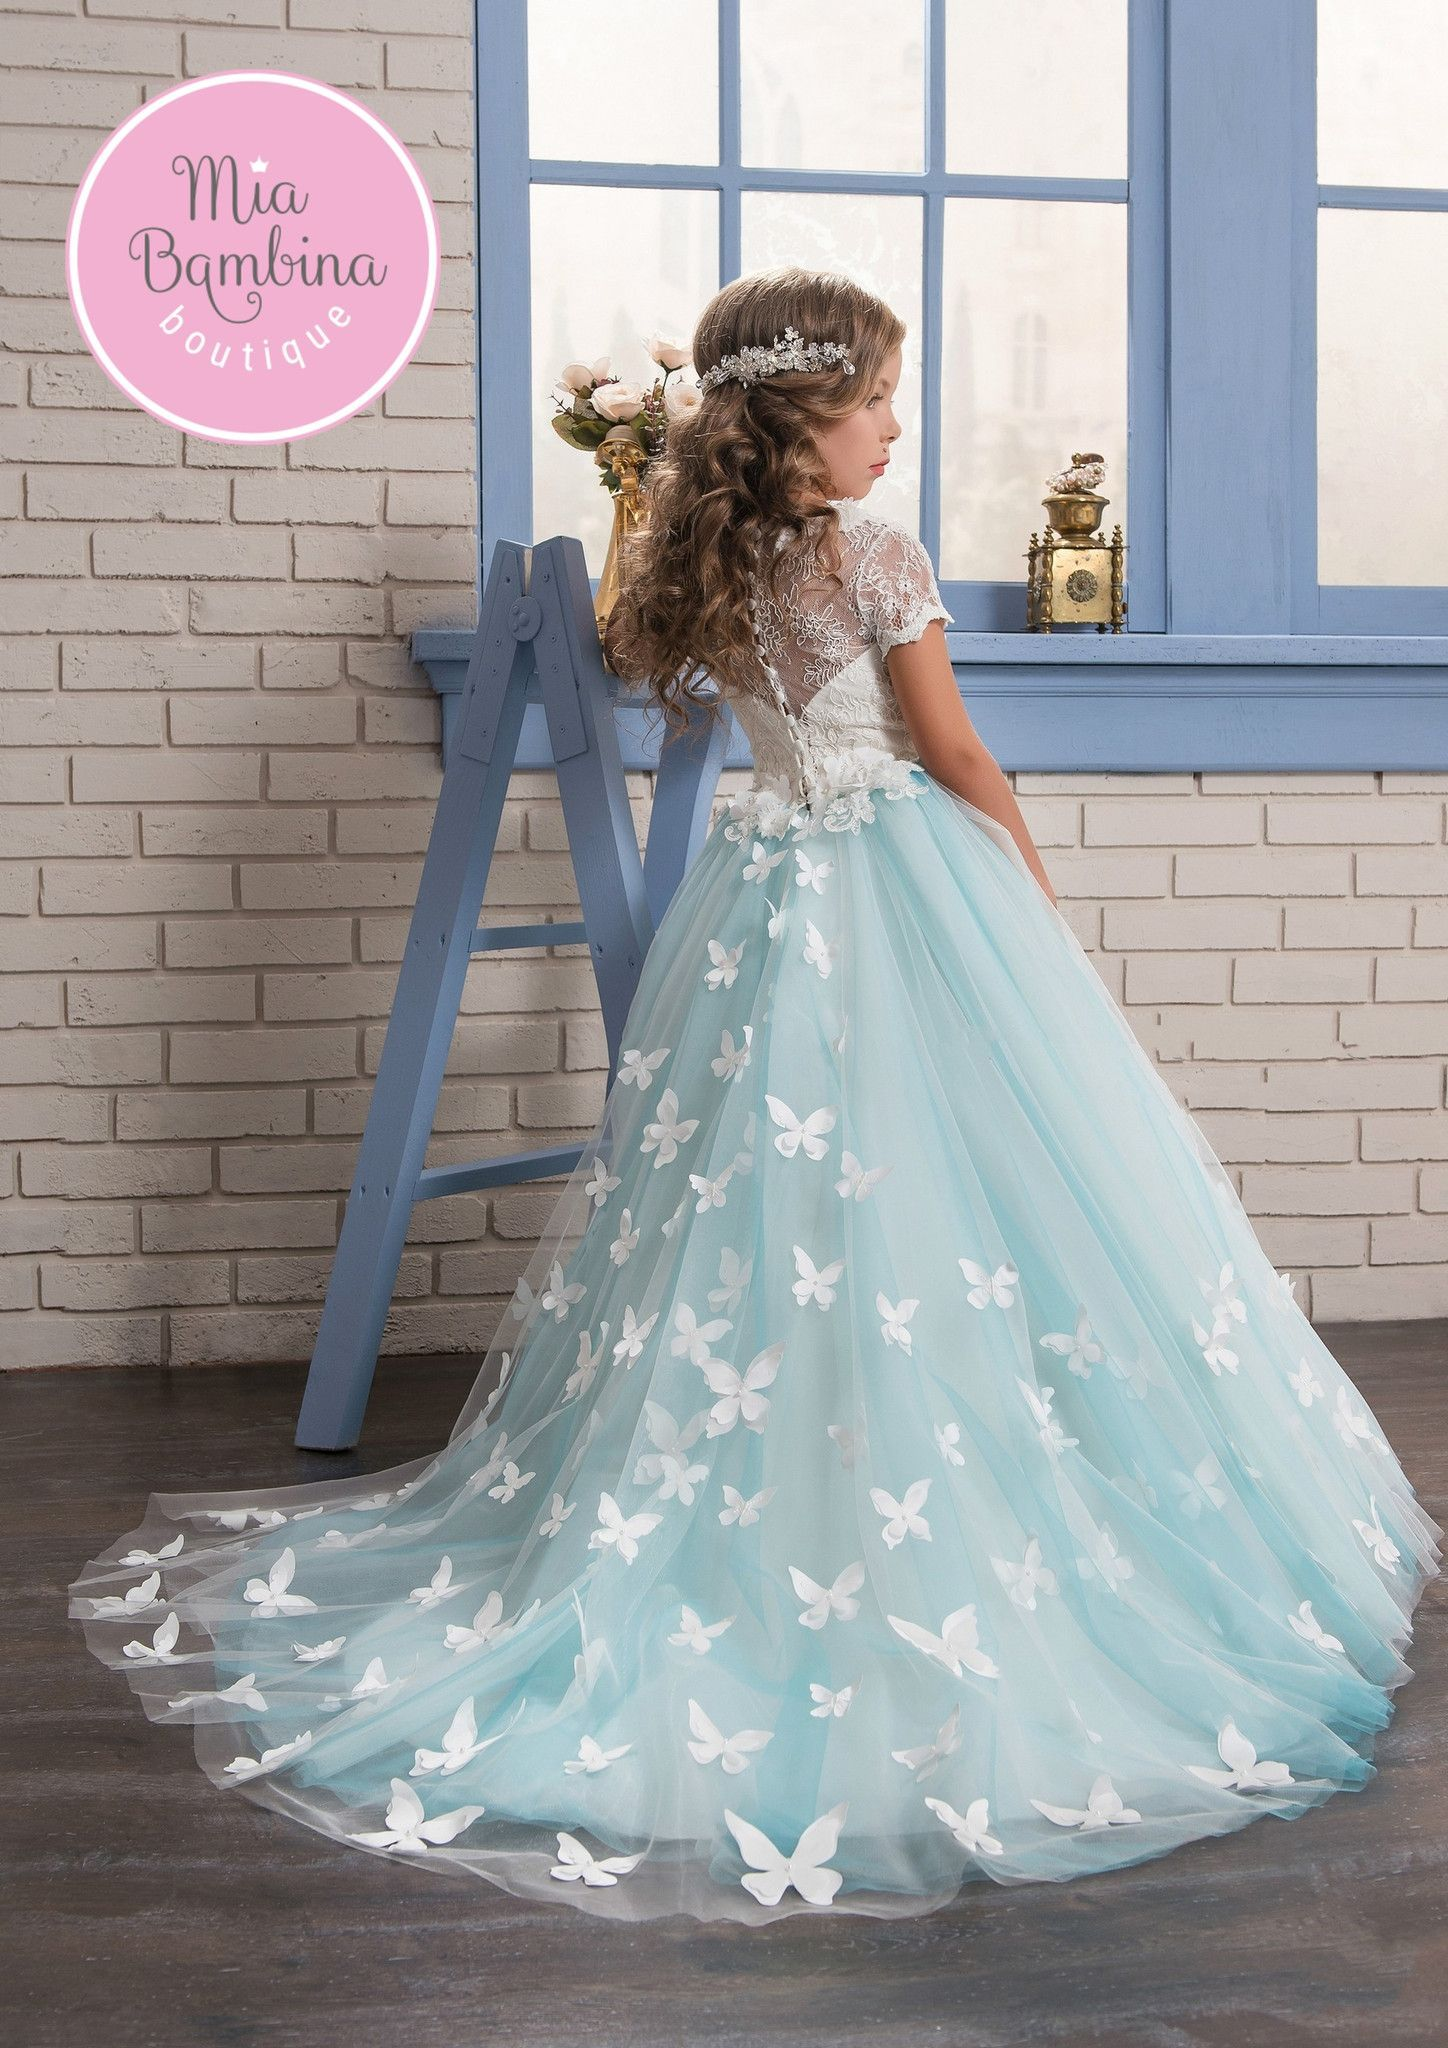 Aurora | Tulle skirts, Flower girl dresses and White lace